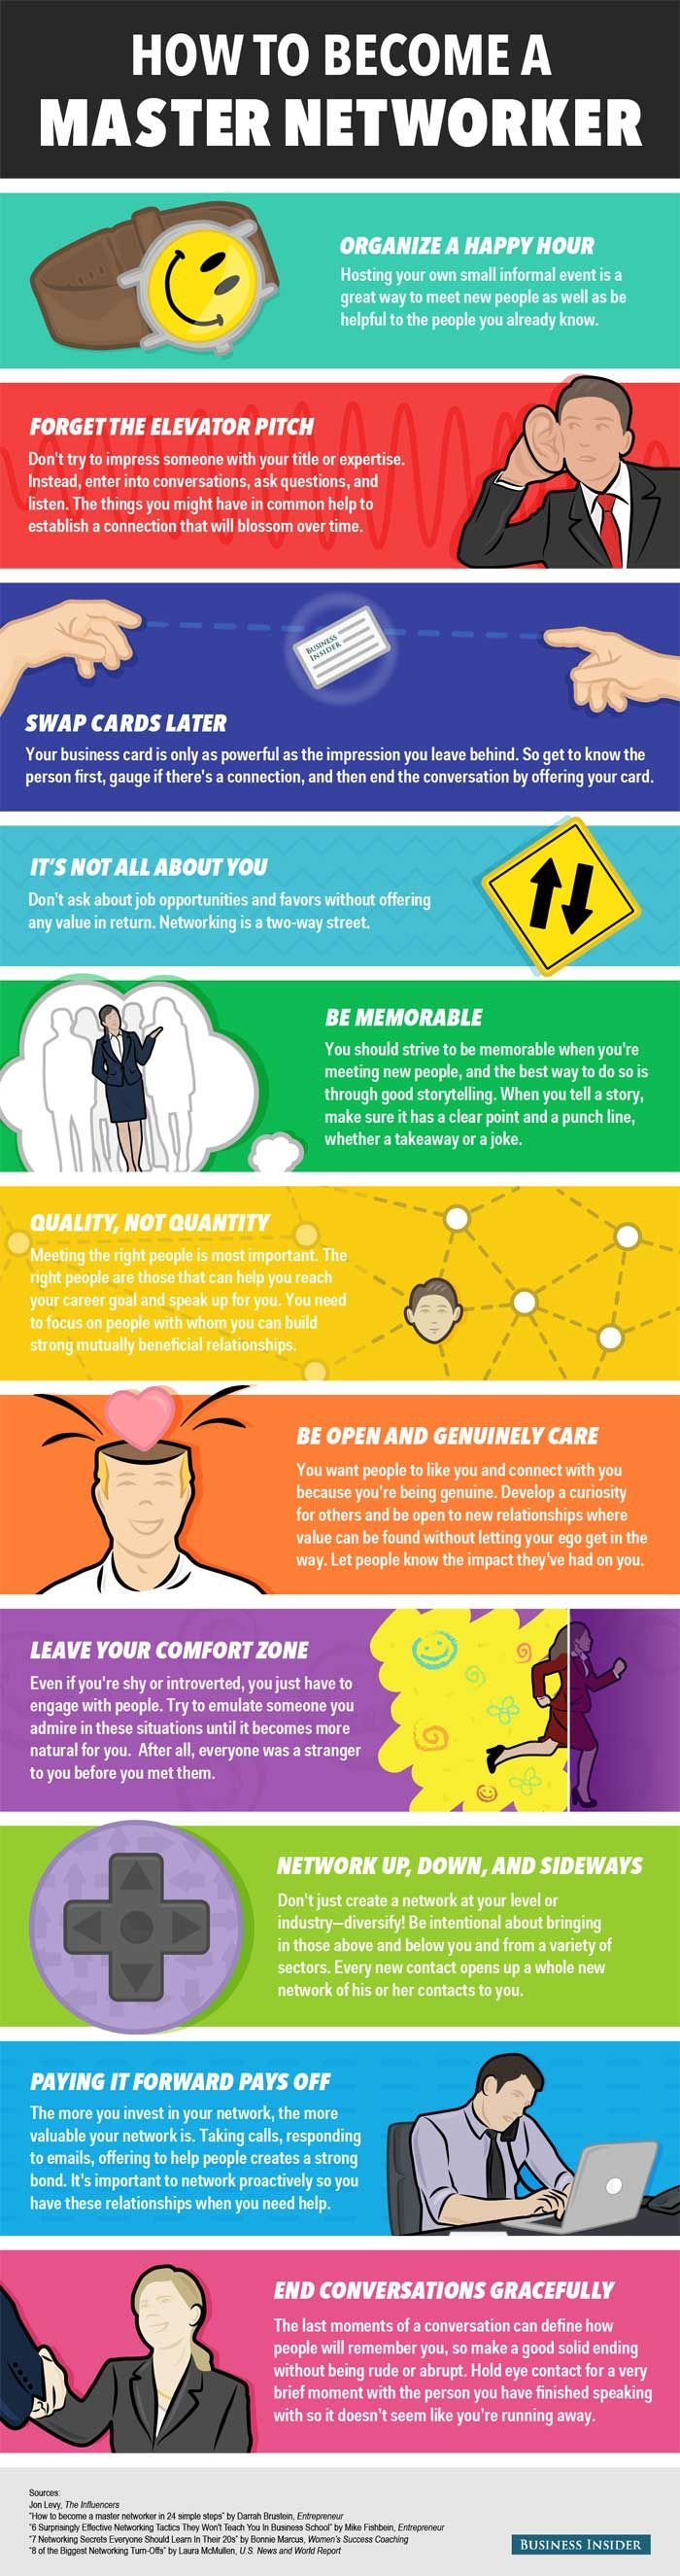 11 Helpful Tips For Becoming A Better Networker [Infographic] You Looking  For Help Get Going Your Network Marketing Business?